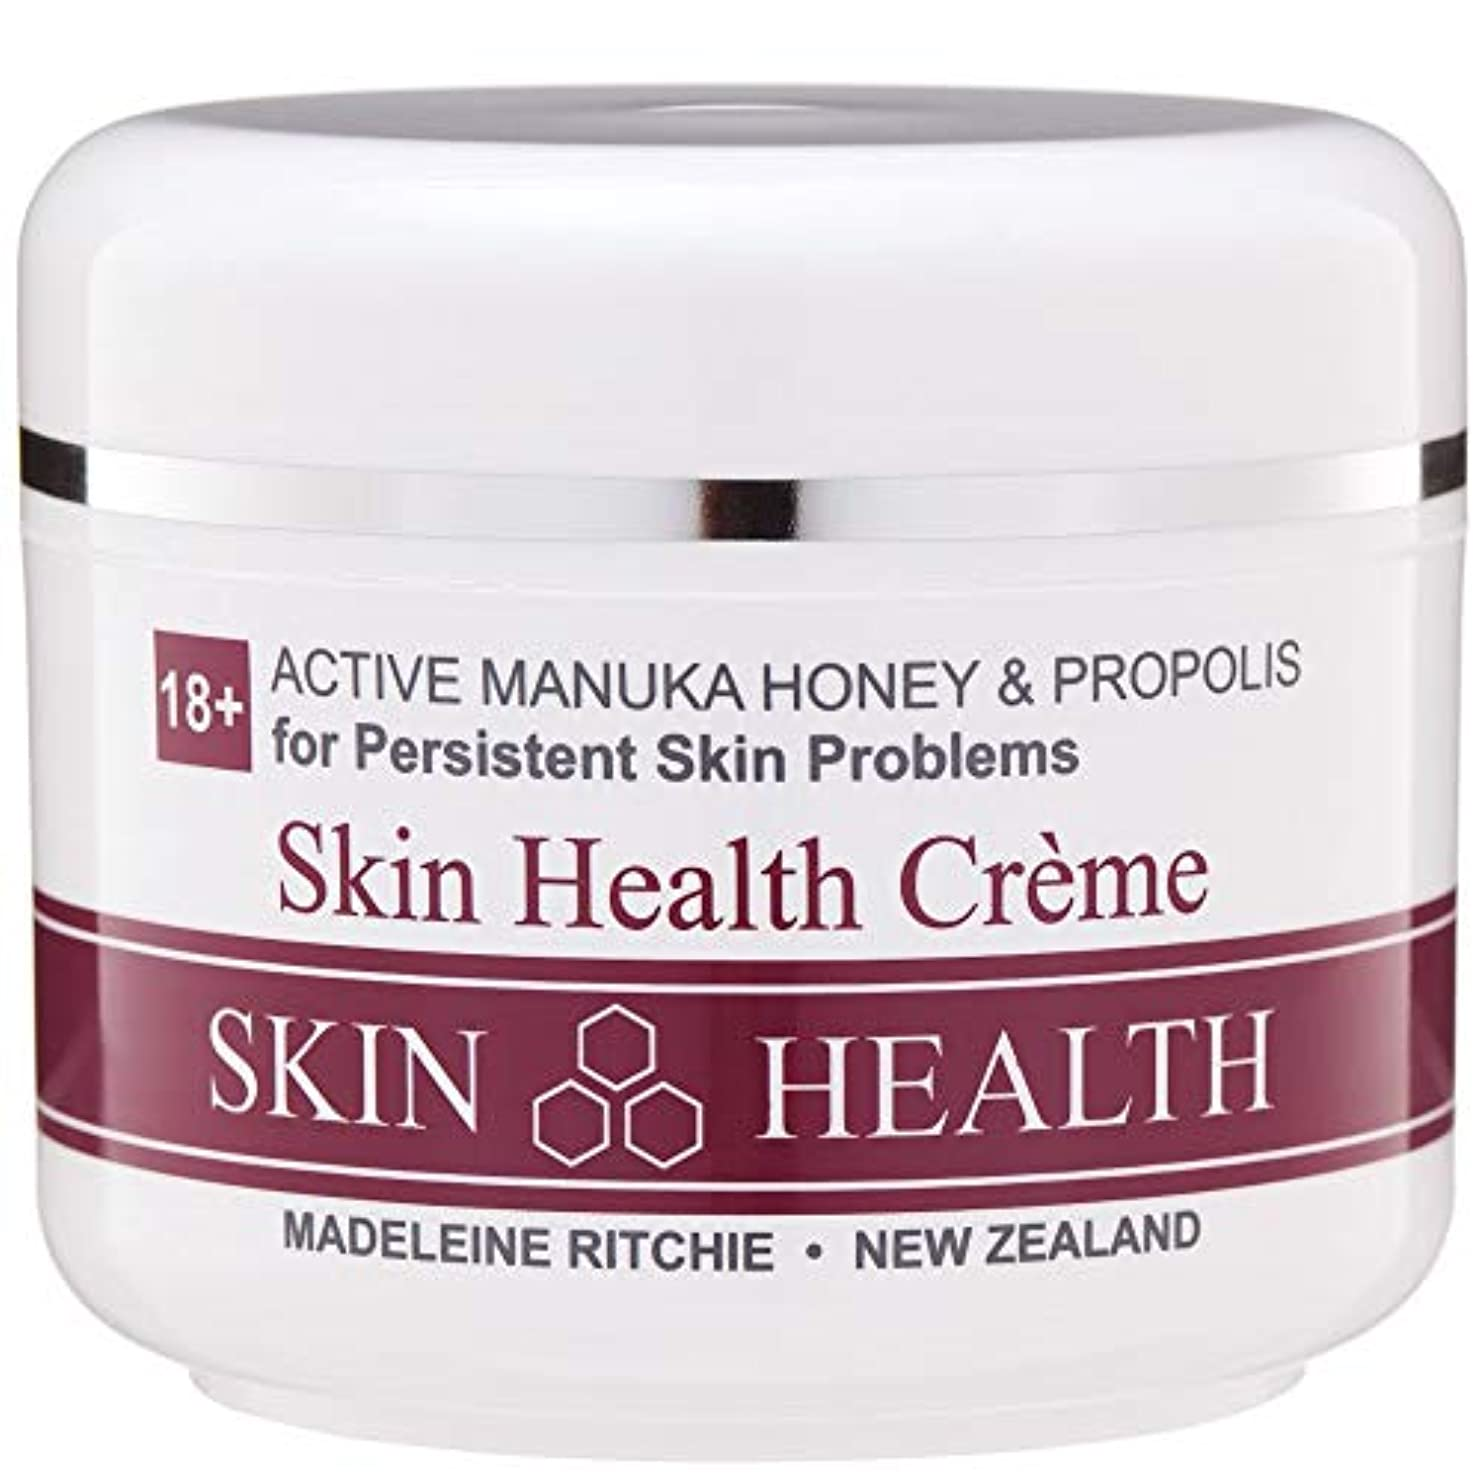 ハリウッドマインドフル実行可能Madeleine Ritchie New Zealand 18+ Active Manuka Honey Skin Health Cream Jar 100ml